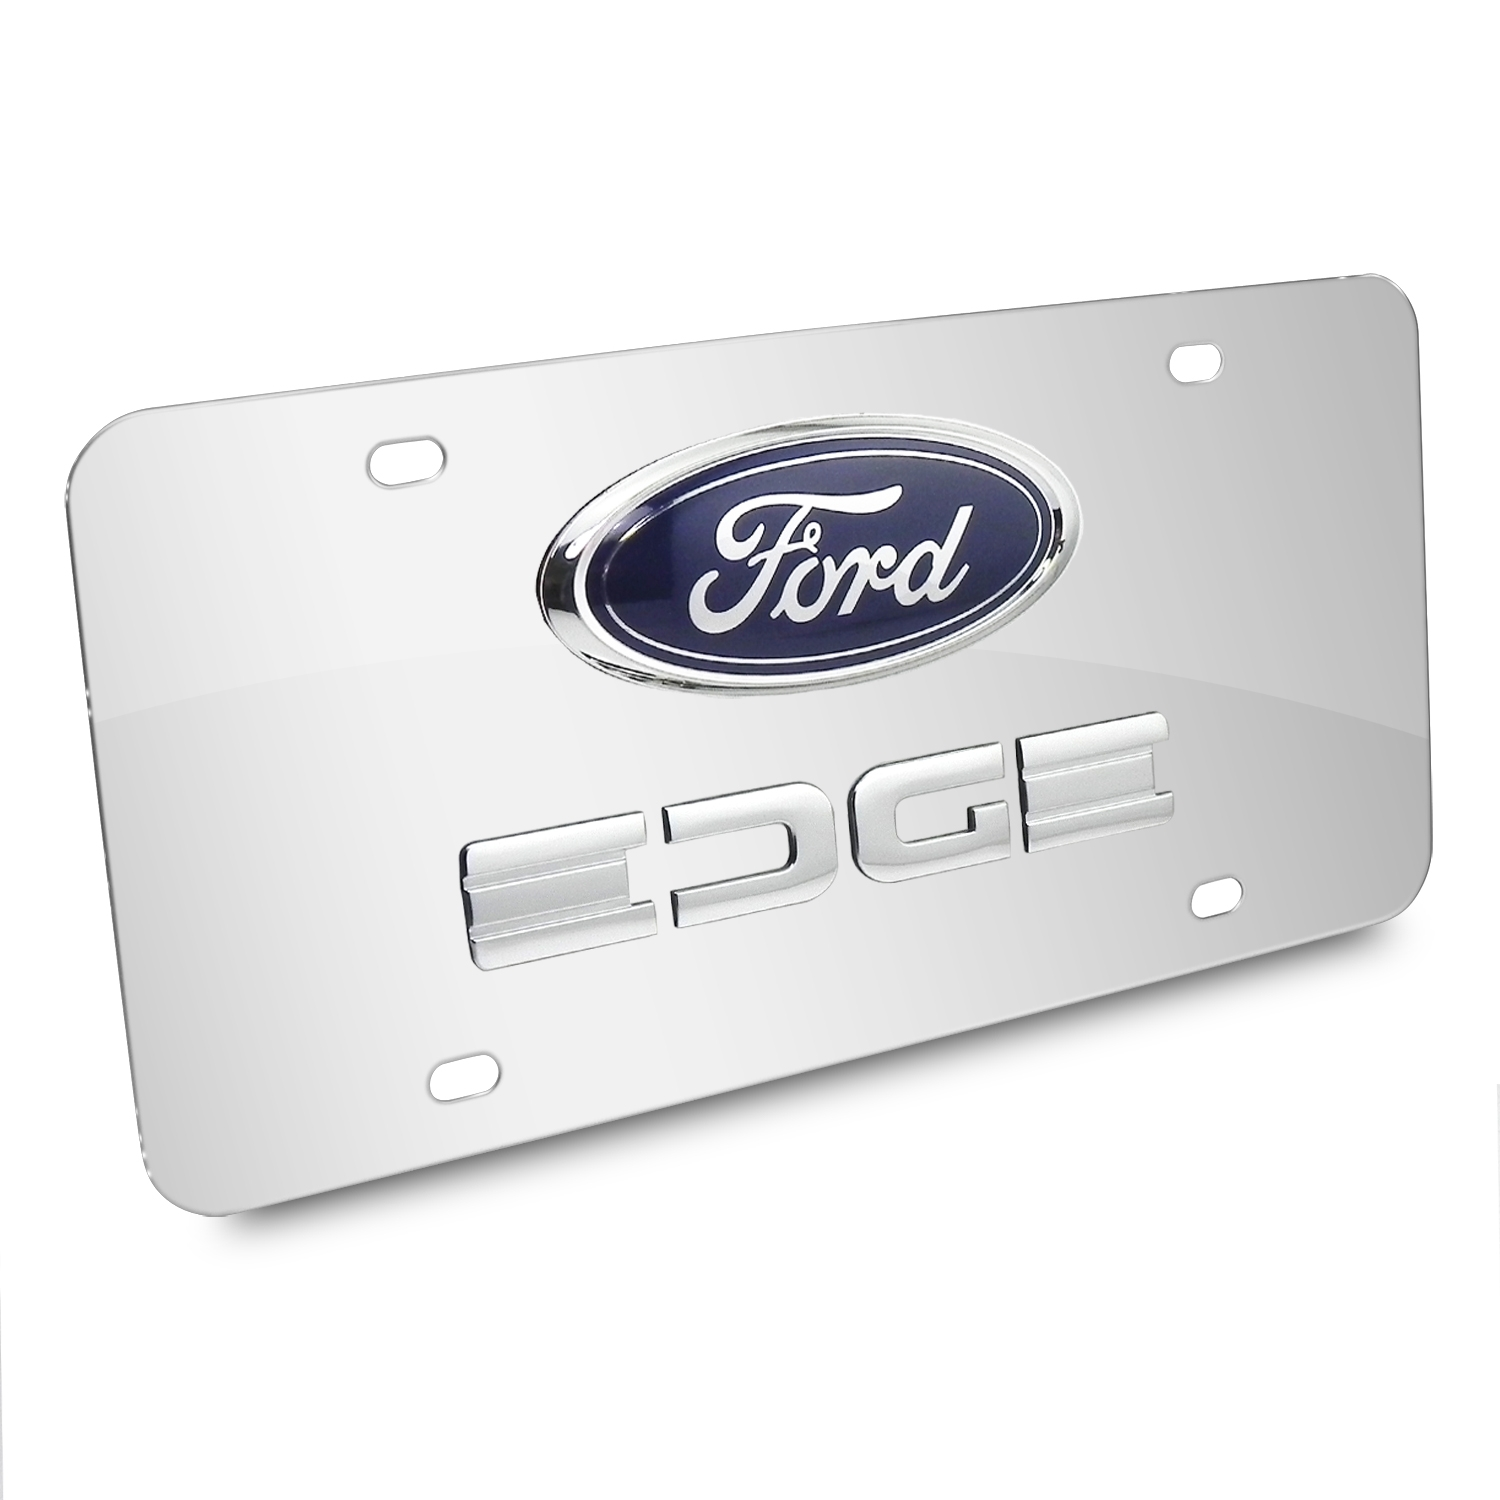 Ford Edge Double 3D Logo Chrome Stainless Steel License Plate